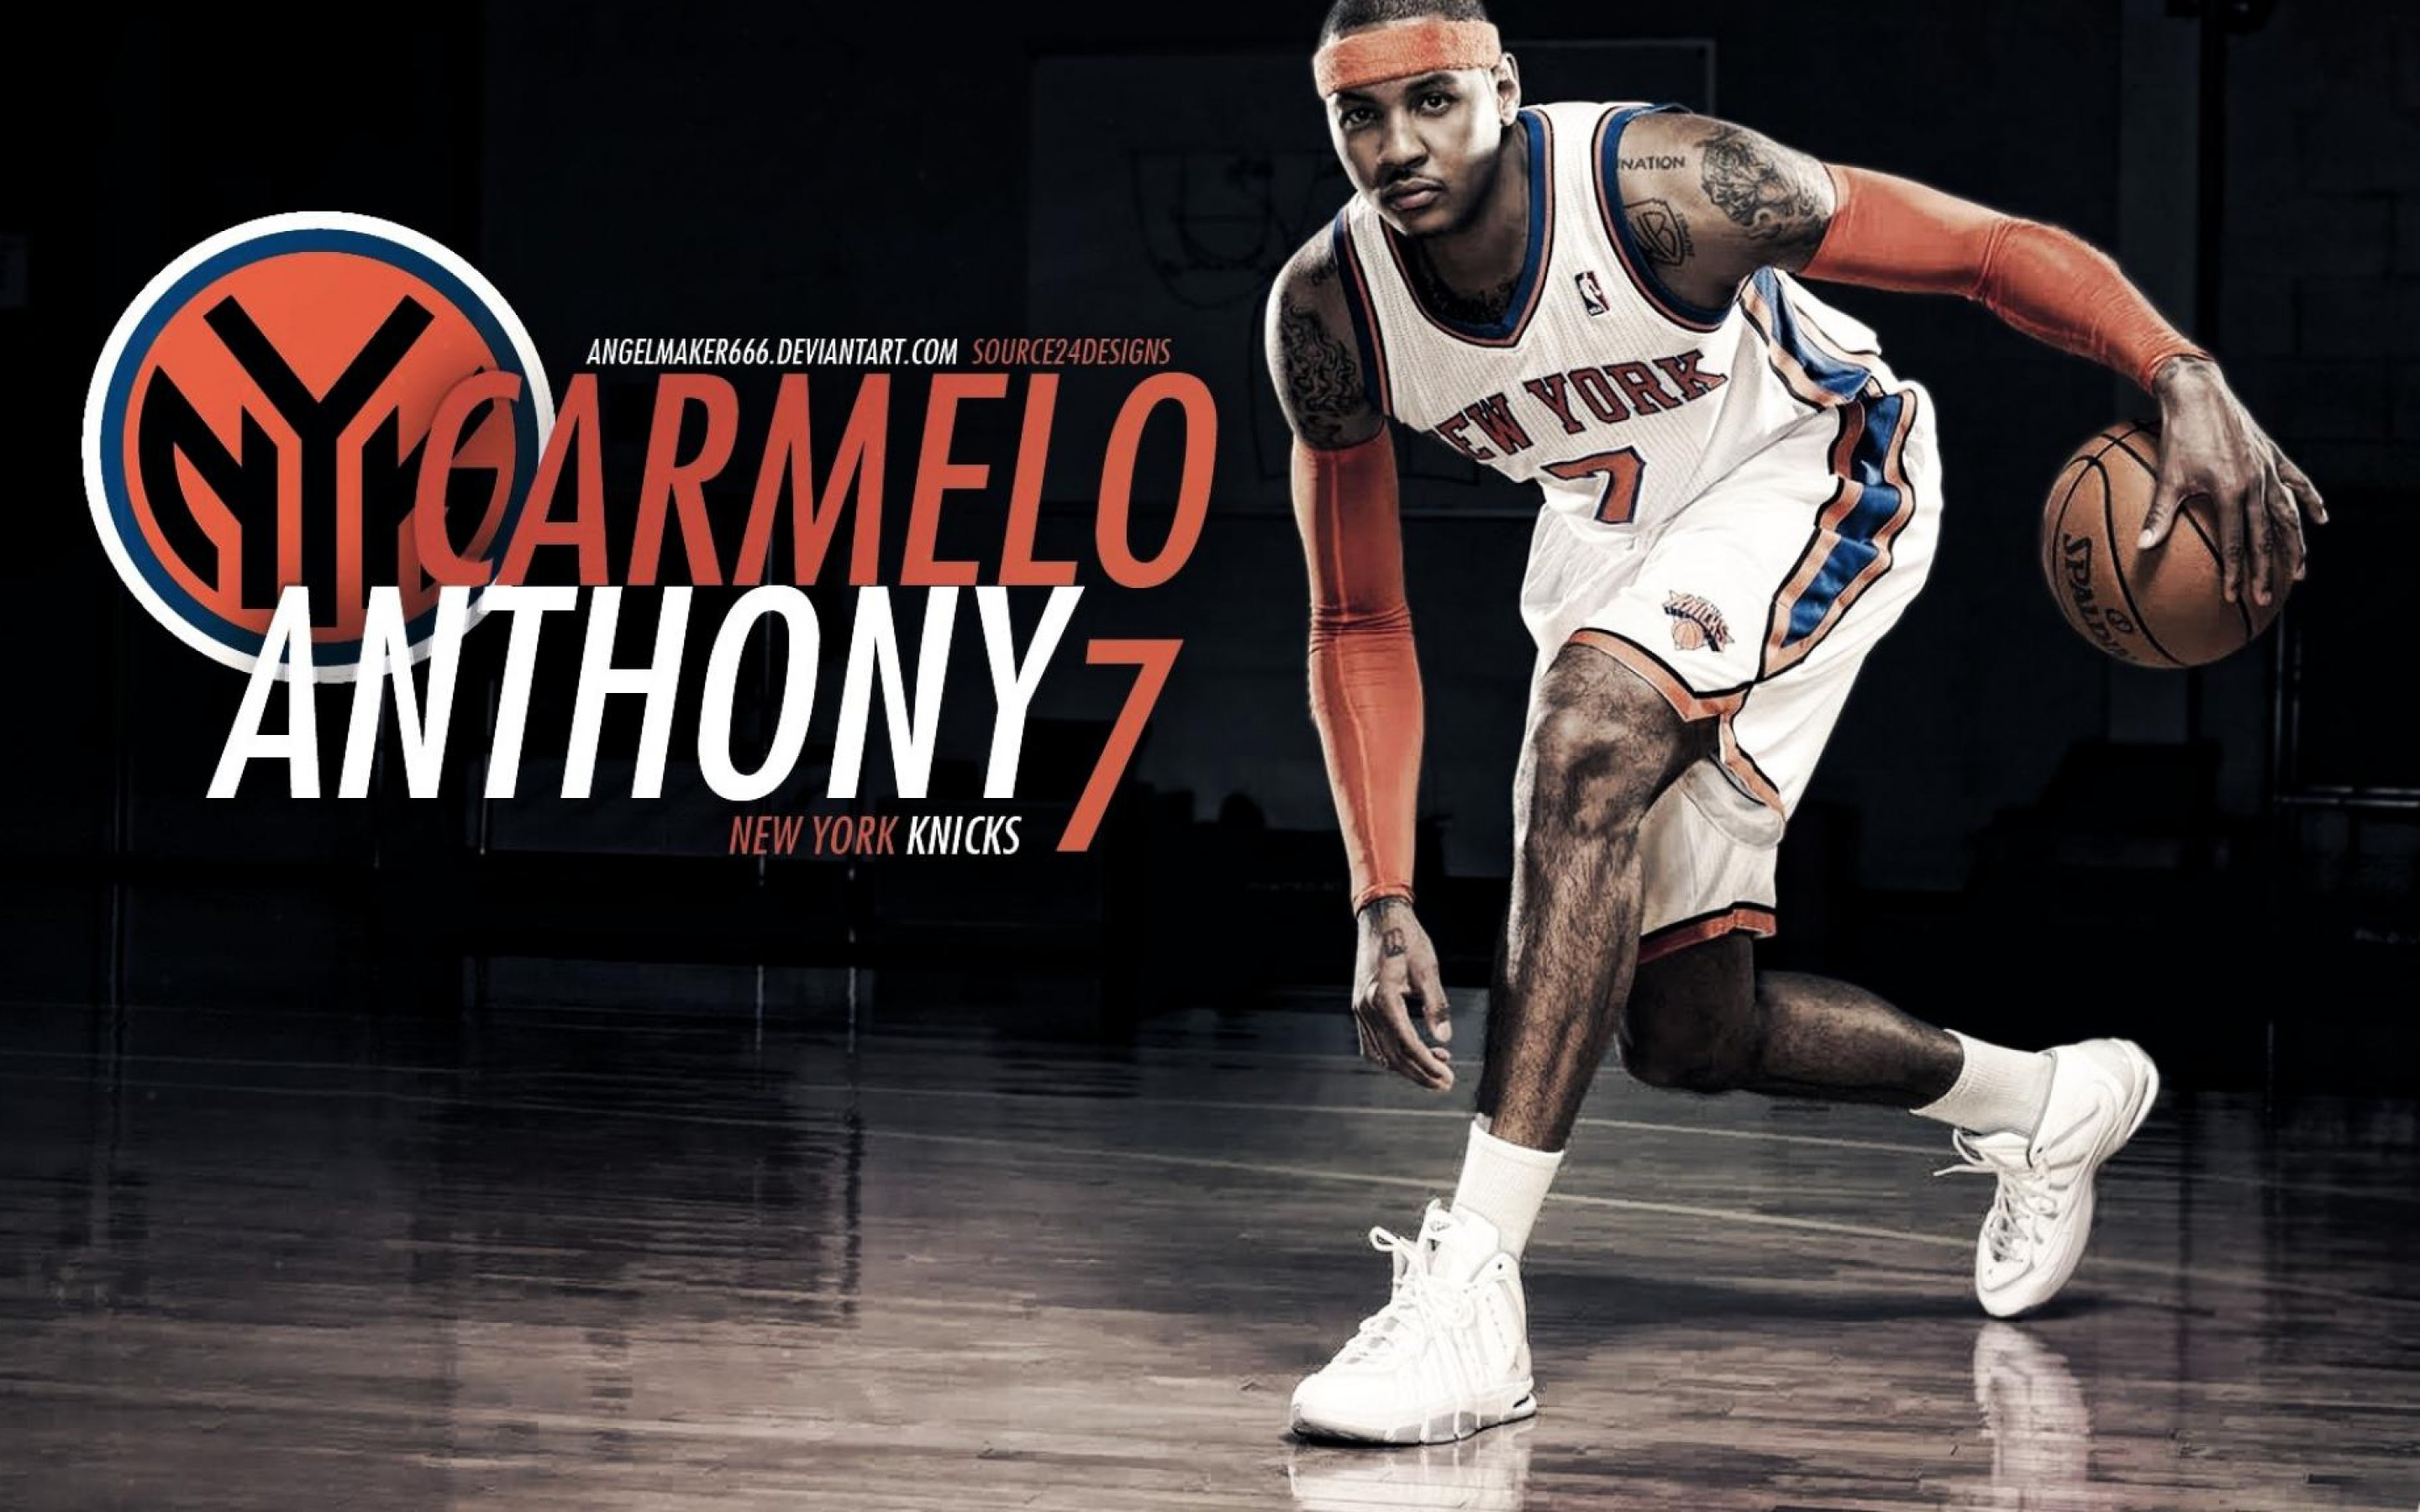 carmelo anthony quotes basketball - photo #25